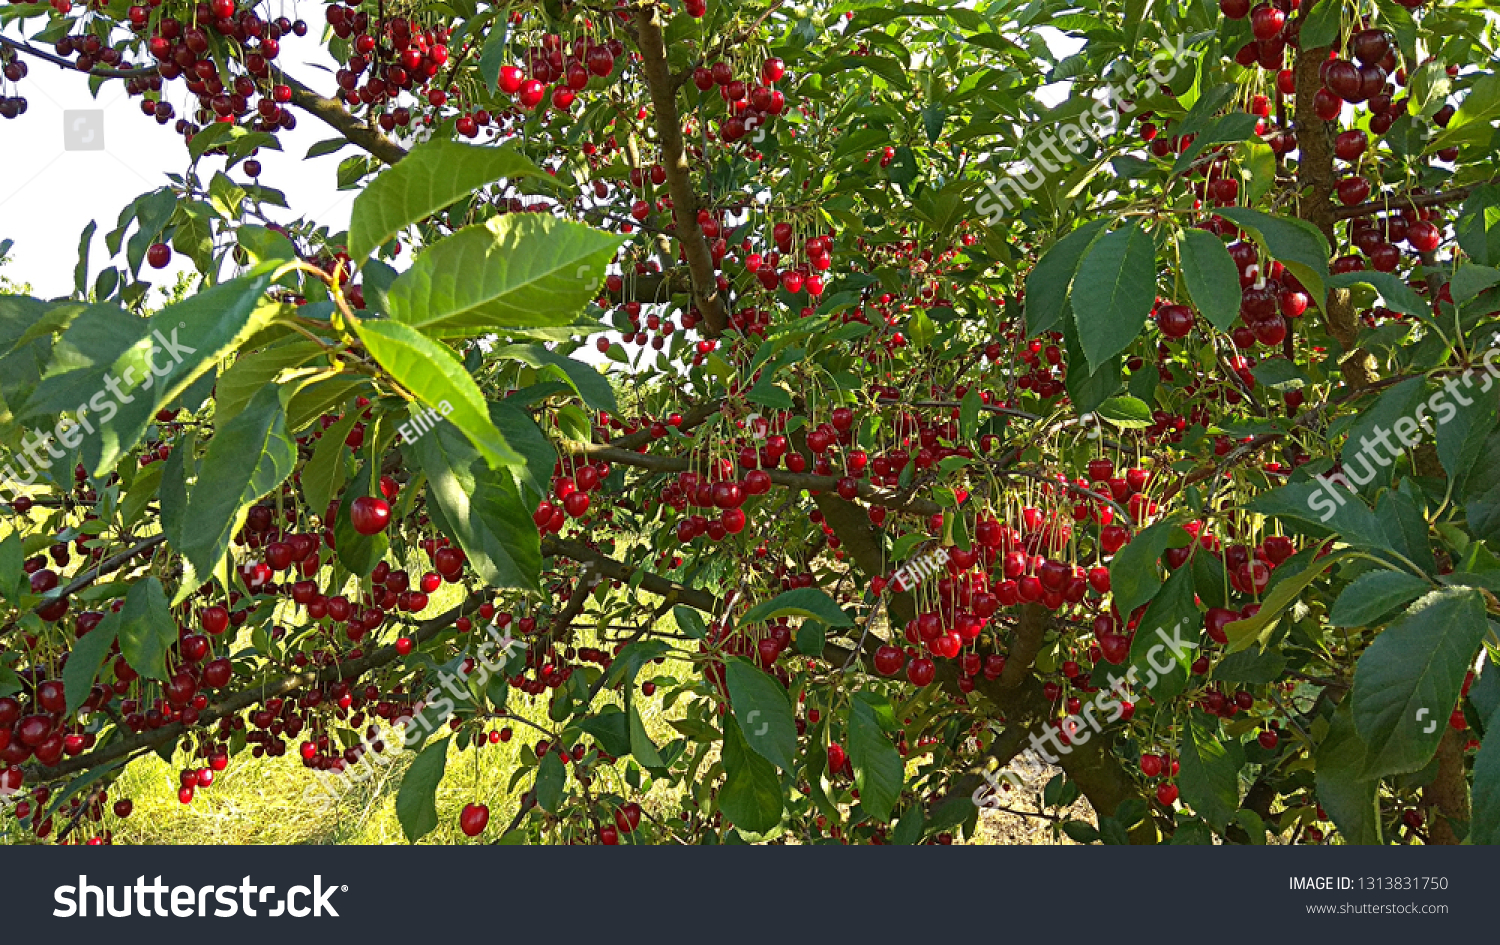 Non Fruit Bearing Tree Images Stock Photos Vectors Shutterstock